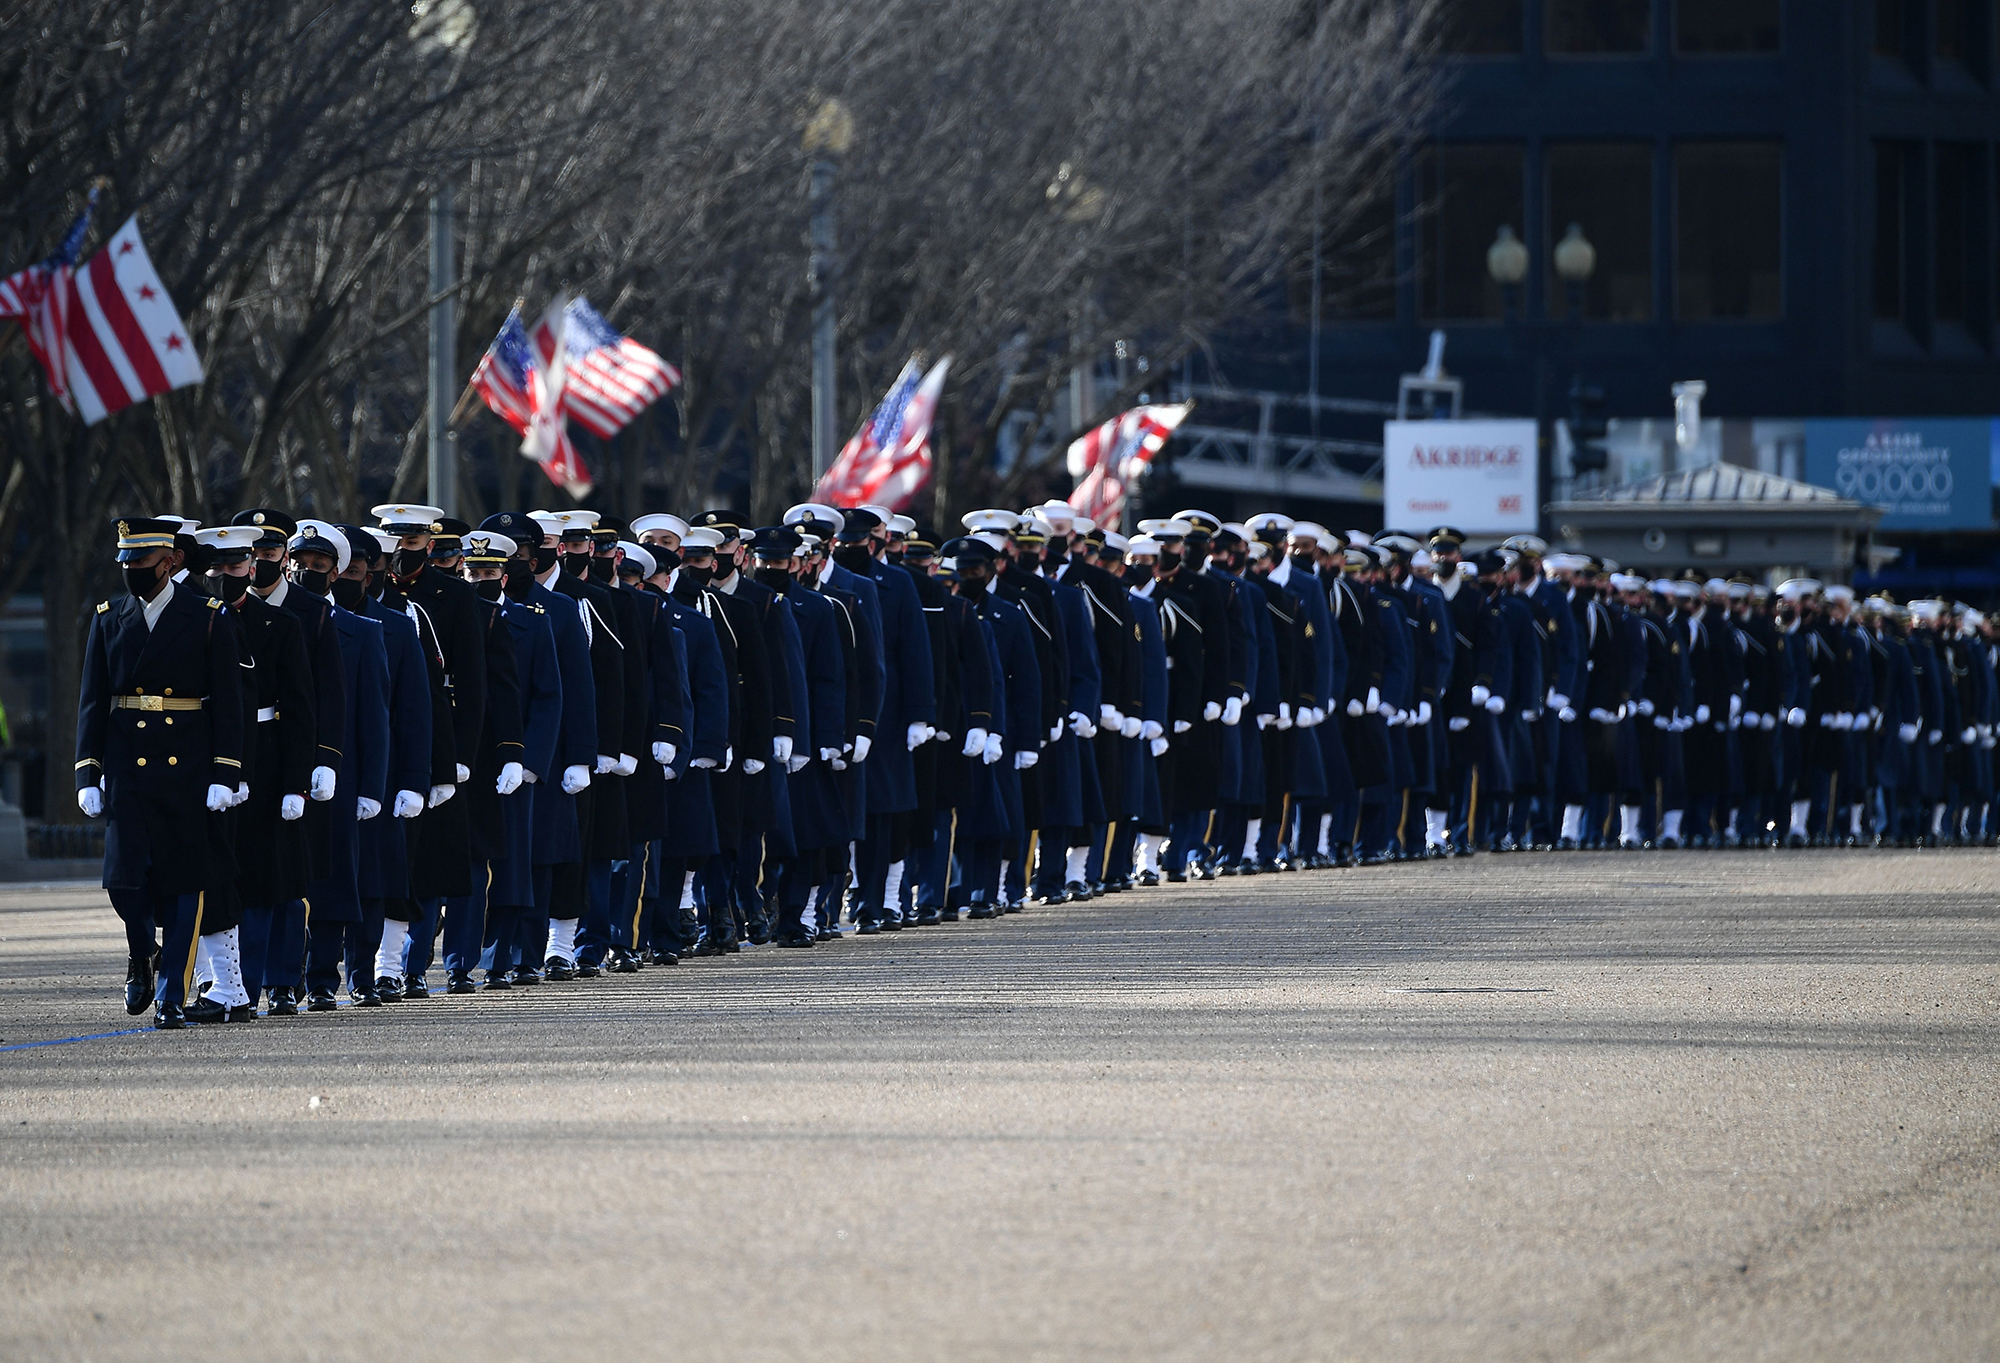 An honor guard deploys to line up along Pennsylvania Avenue in front of the White House in Washington on Jan. 20, 2021. (Mandel Ngan/AFP via Getty Images)